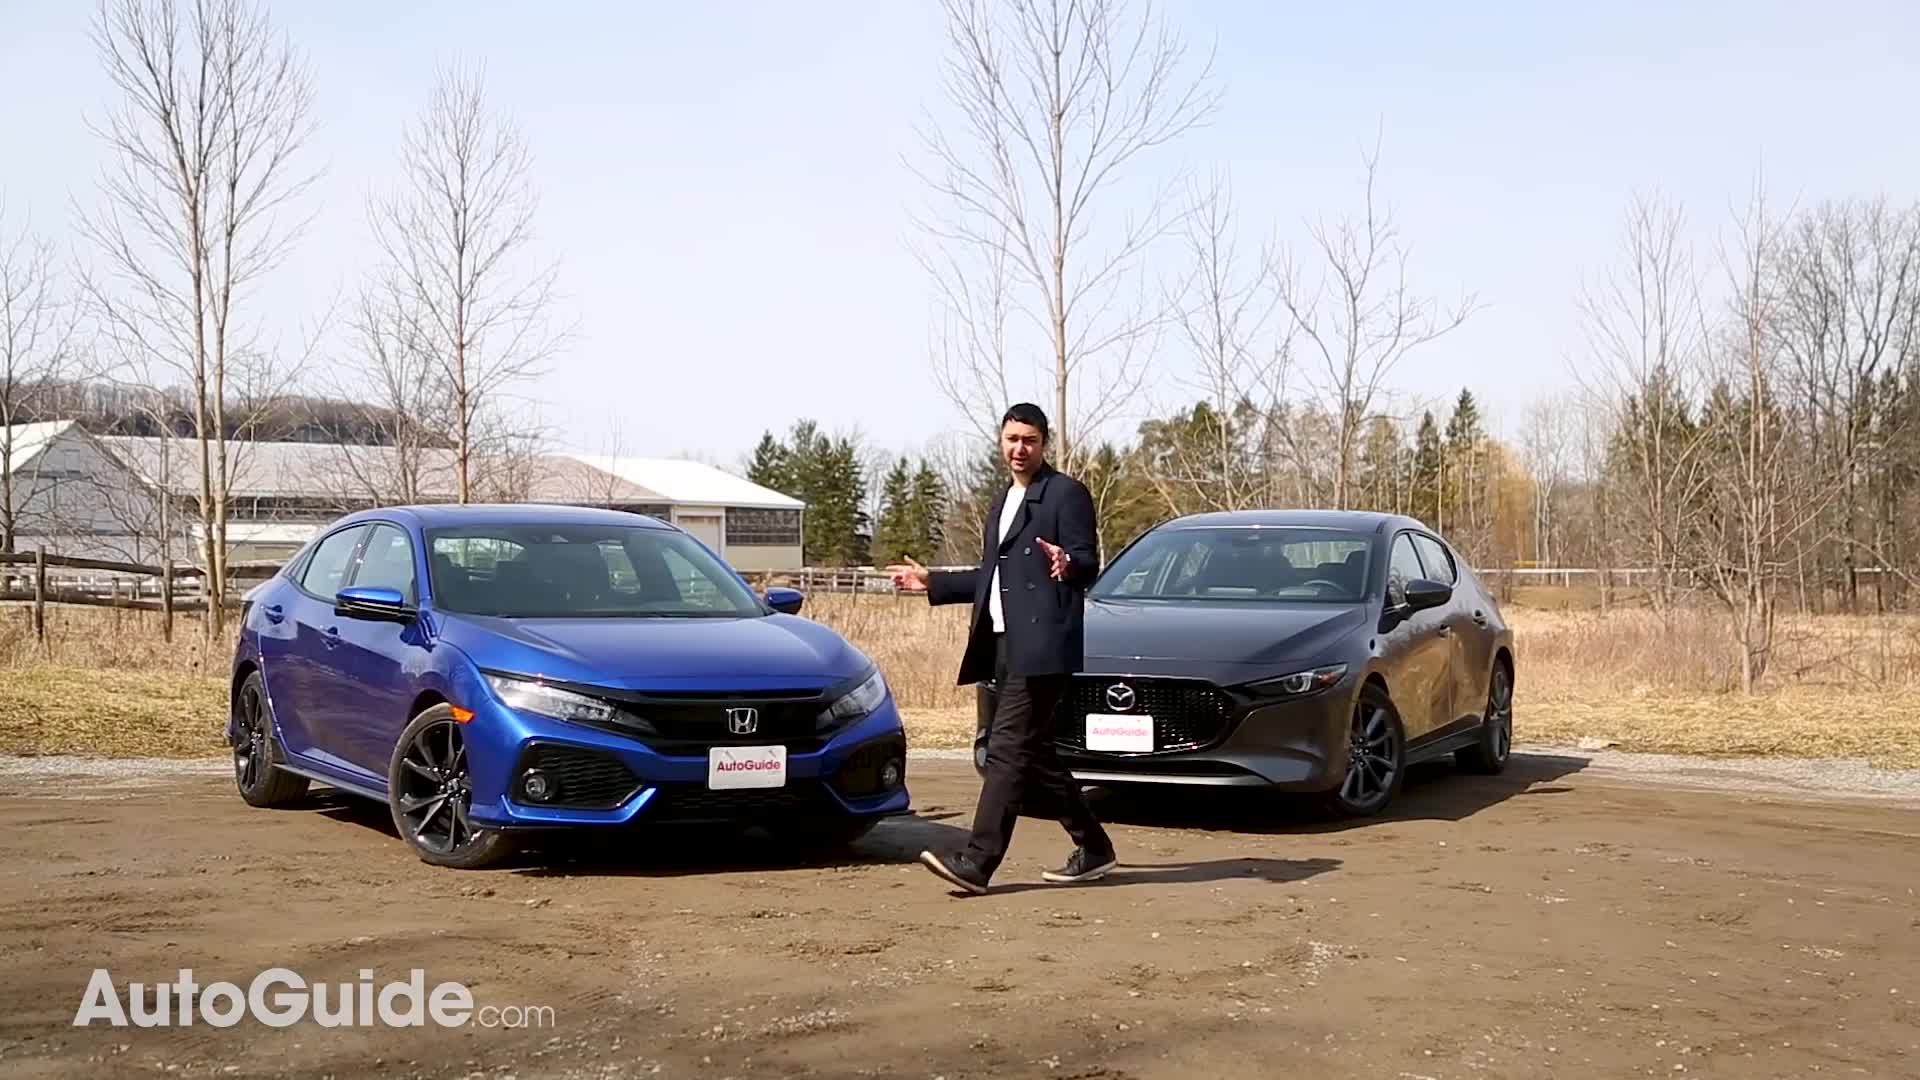 Mazda vs Civic Video Thumb